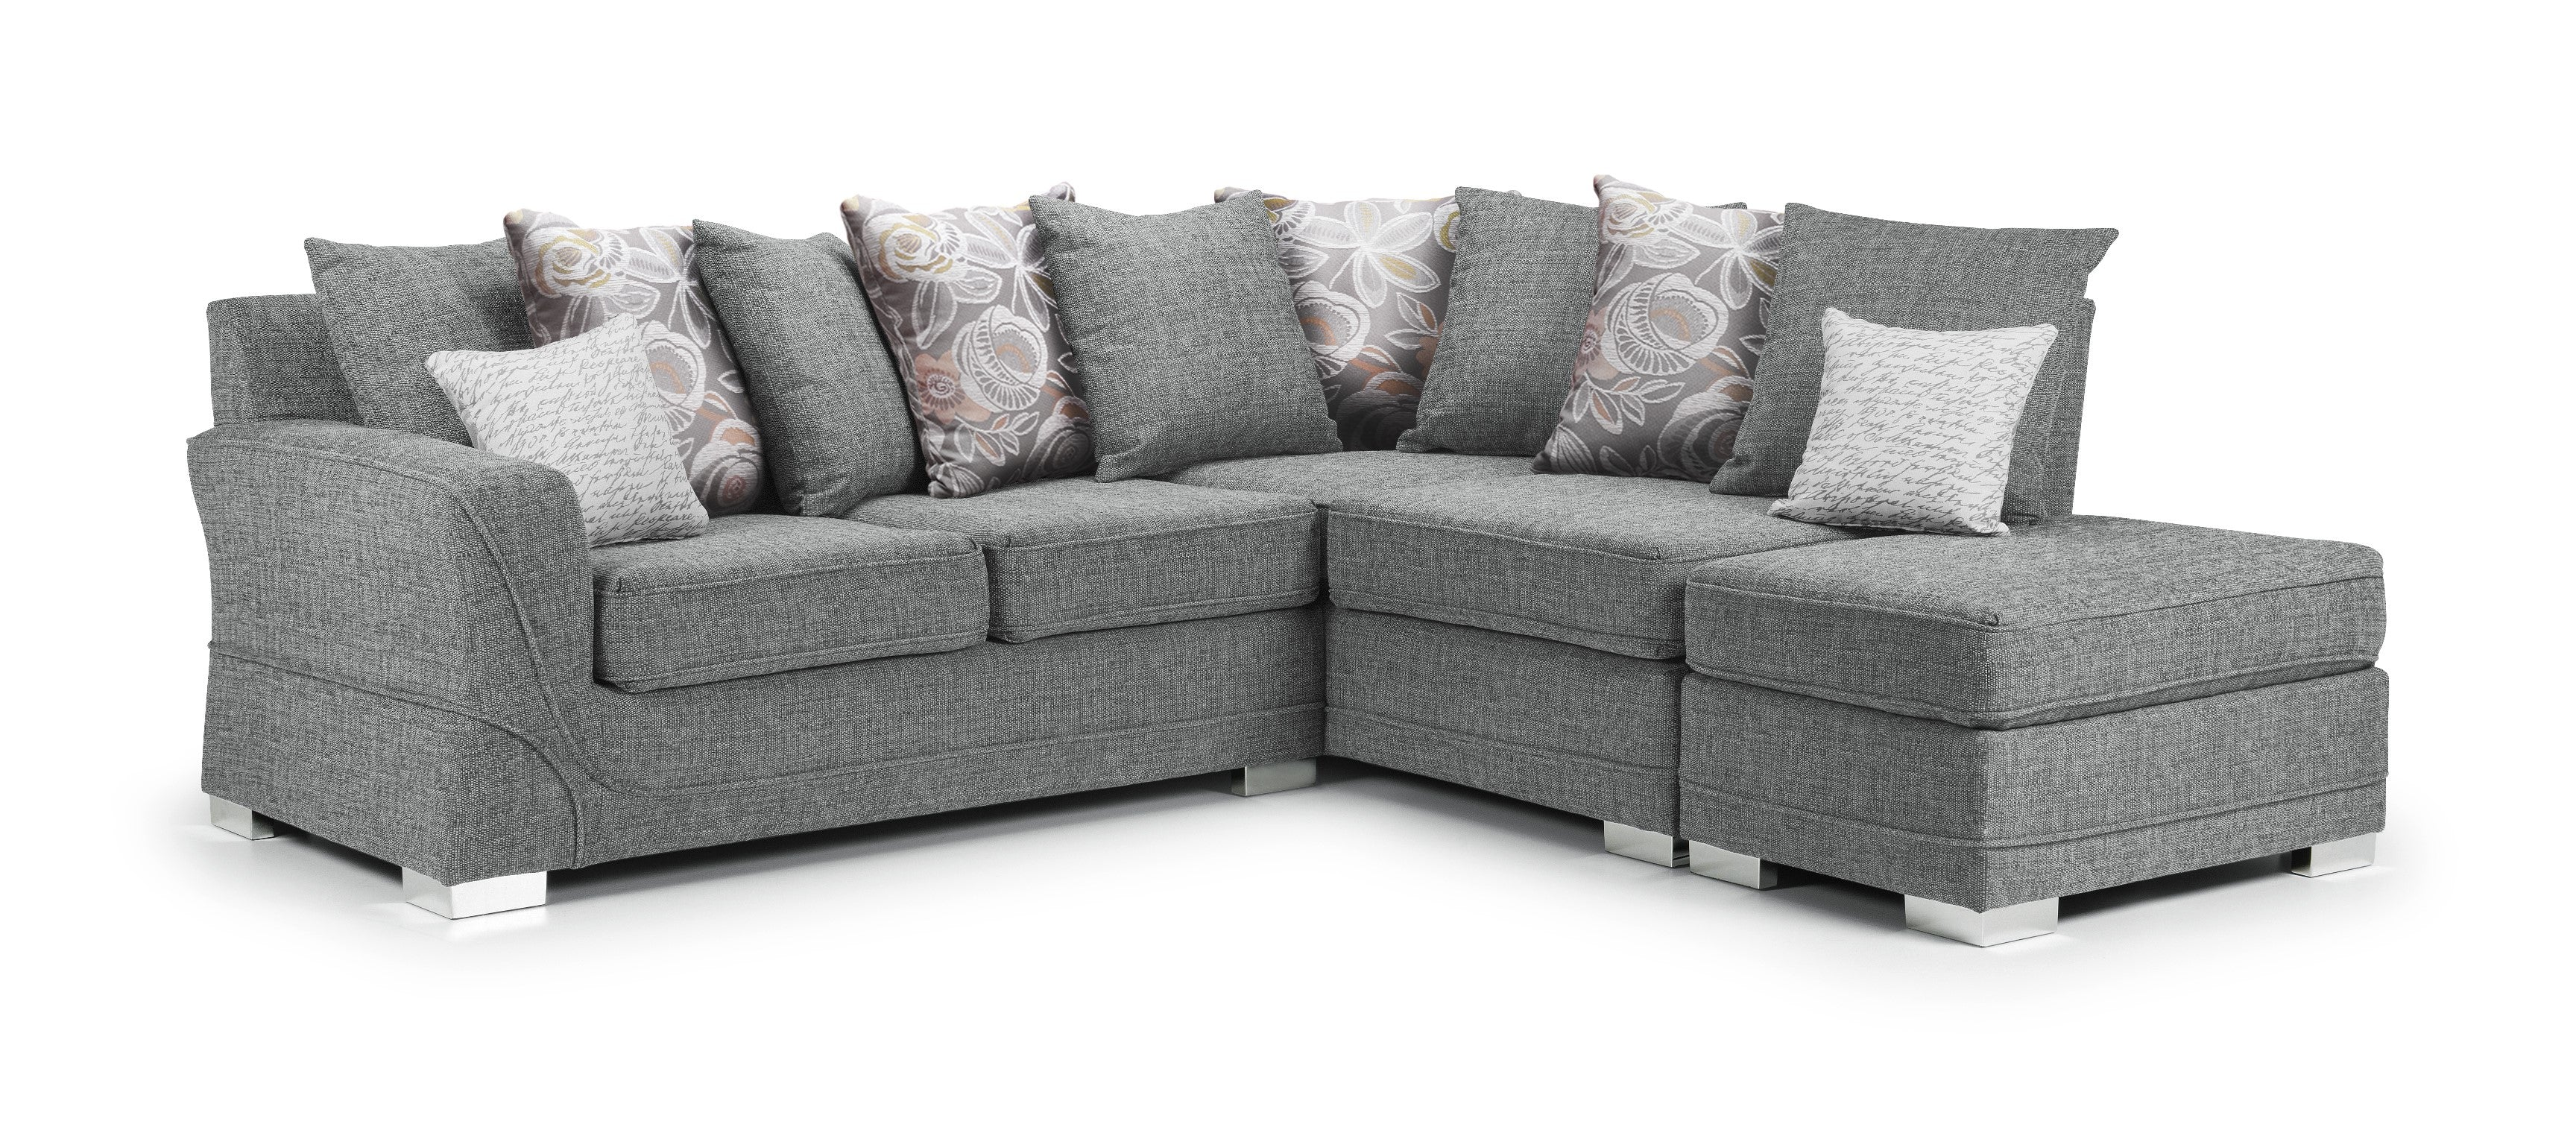 Sofas on finance near Dewsbury